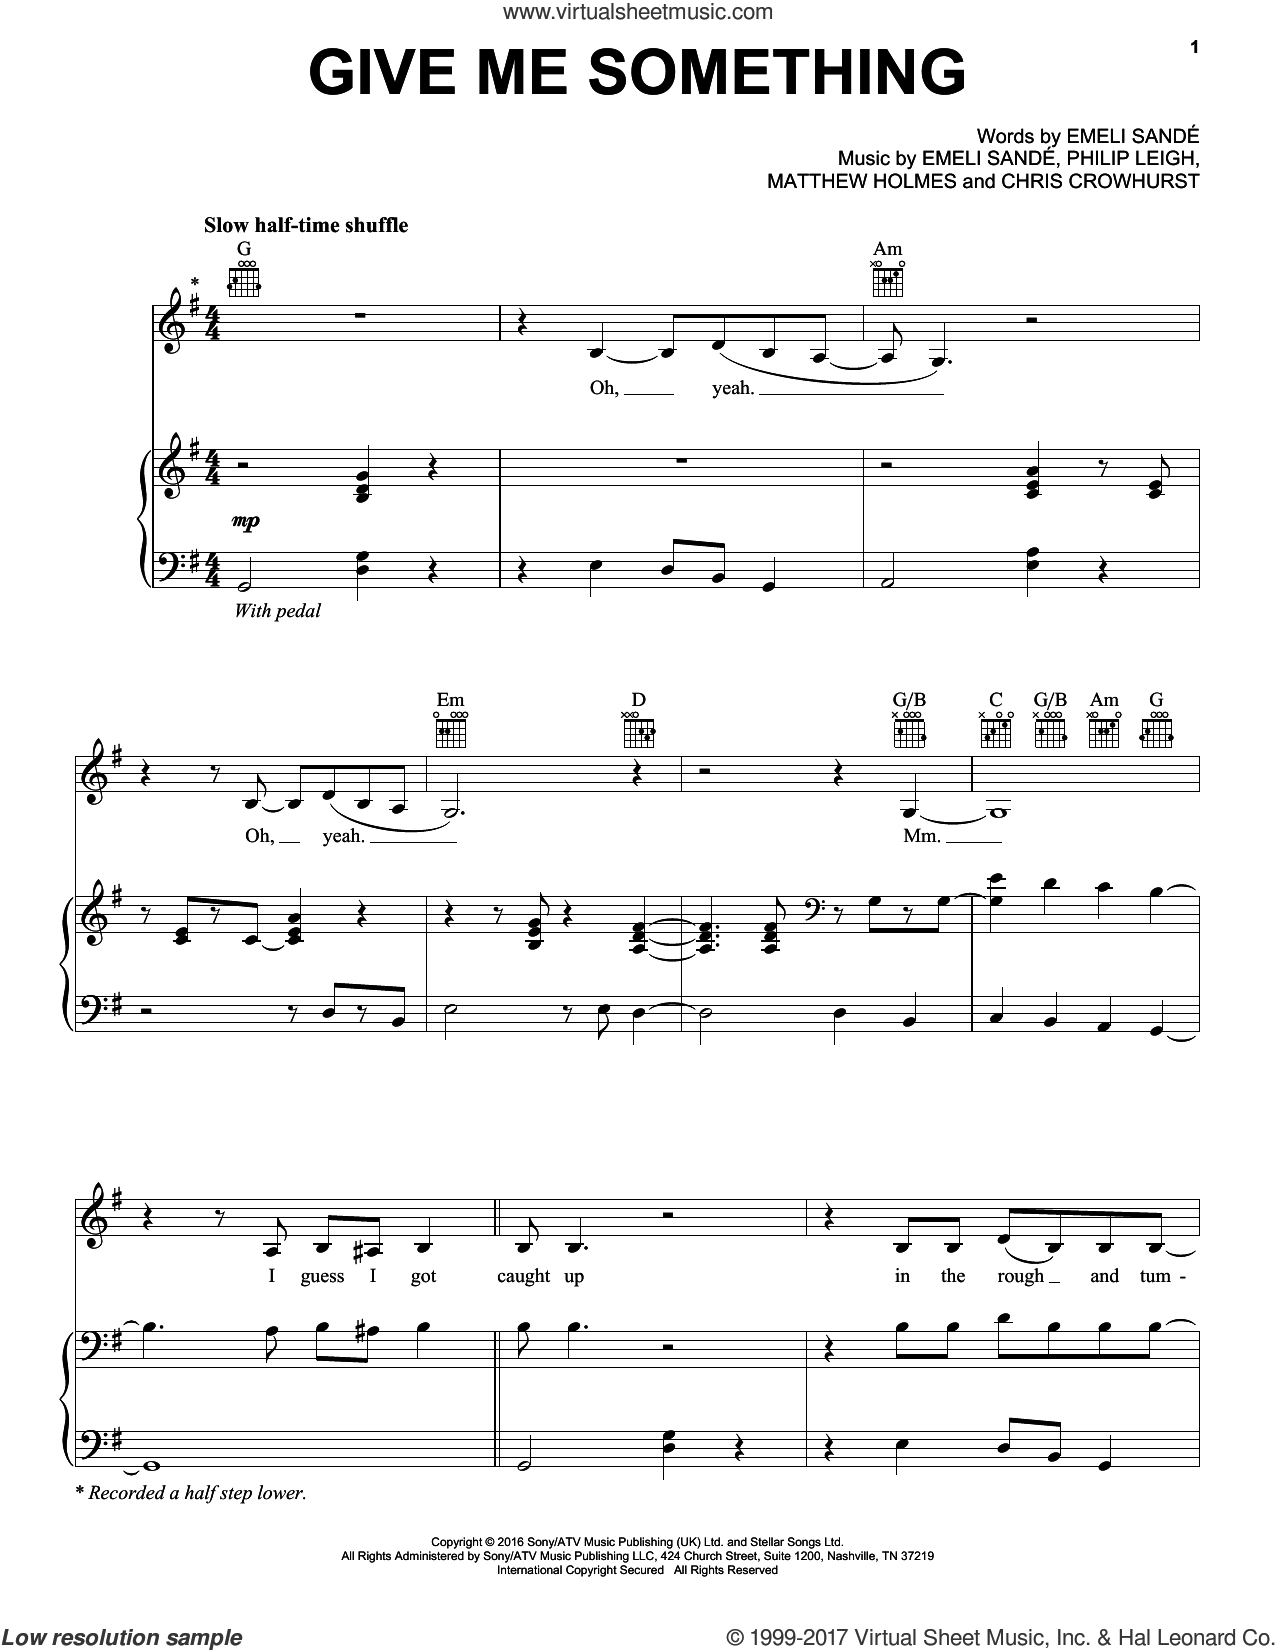 Give Me Something sheet music for voice, piano or guitar by Emeli Sande, Chris Crowhurst, Matthew Holmes and Philip Leigh, intermediate skill level